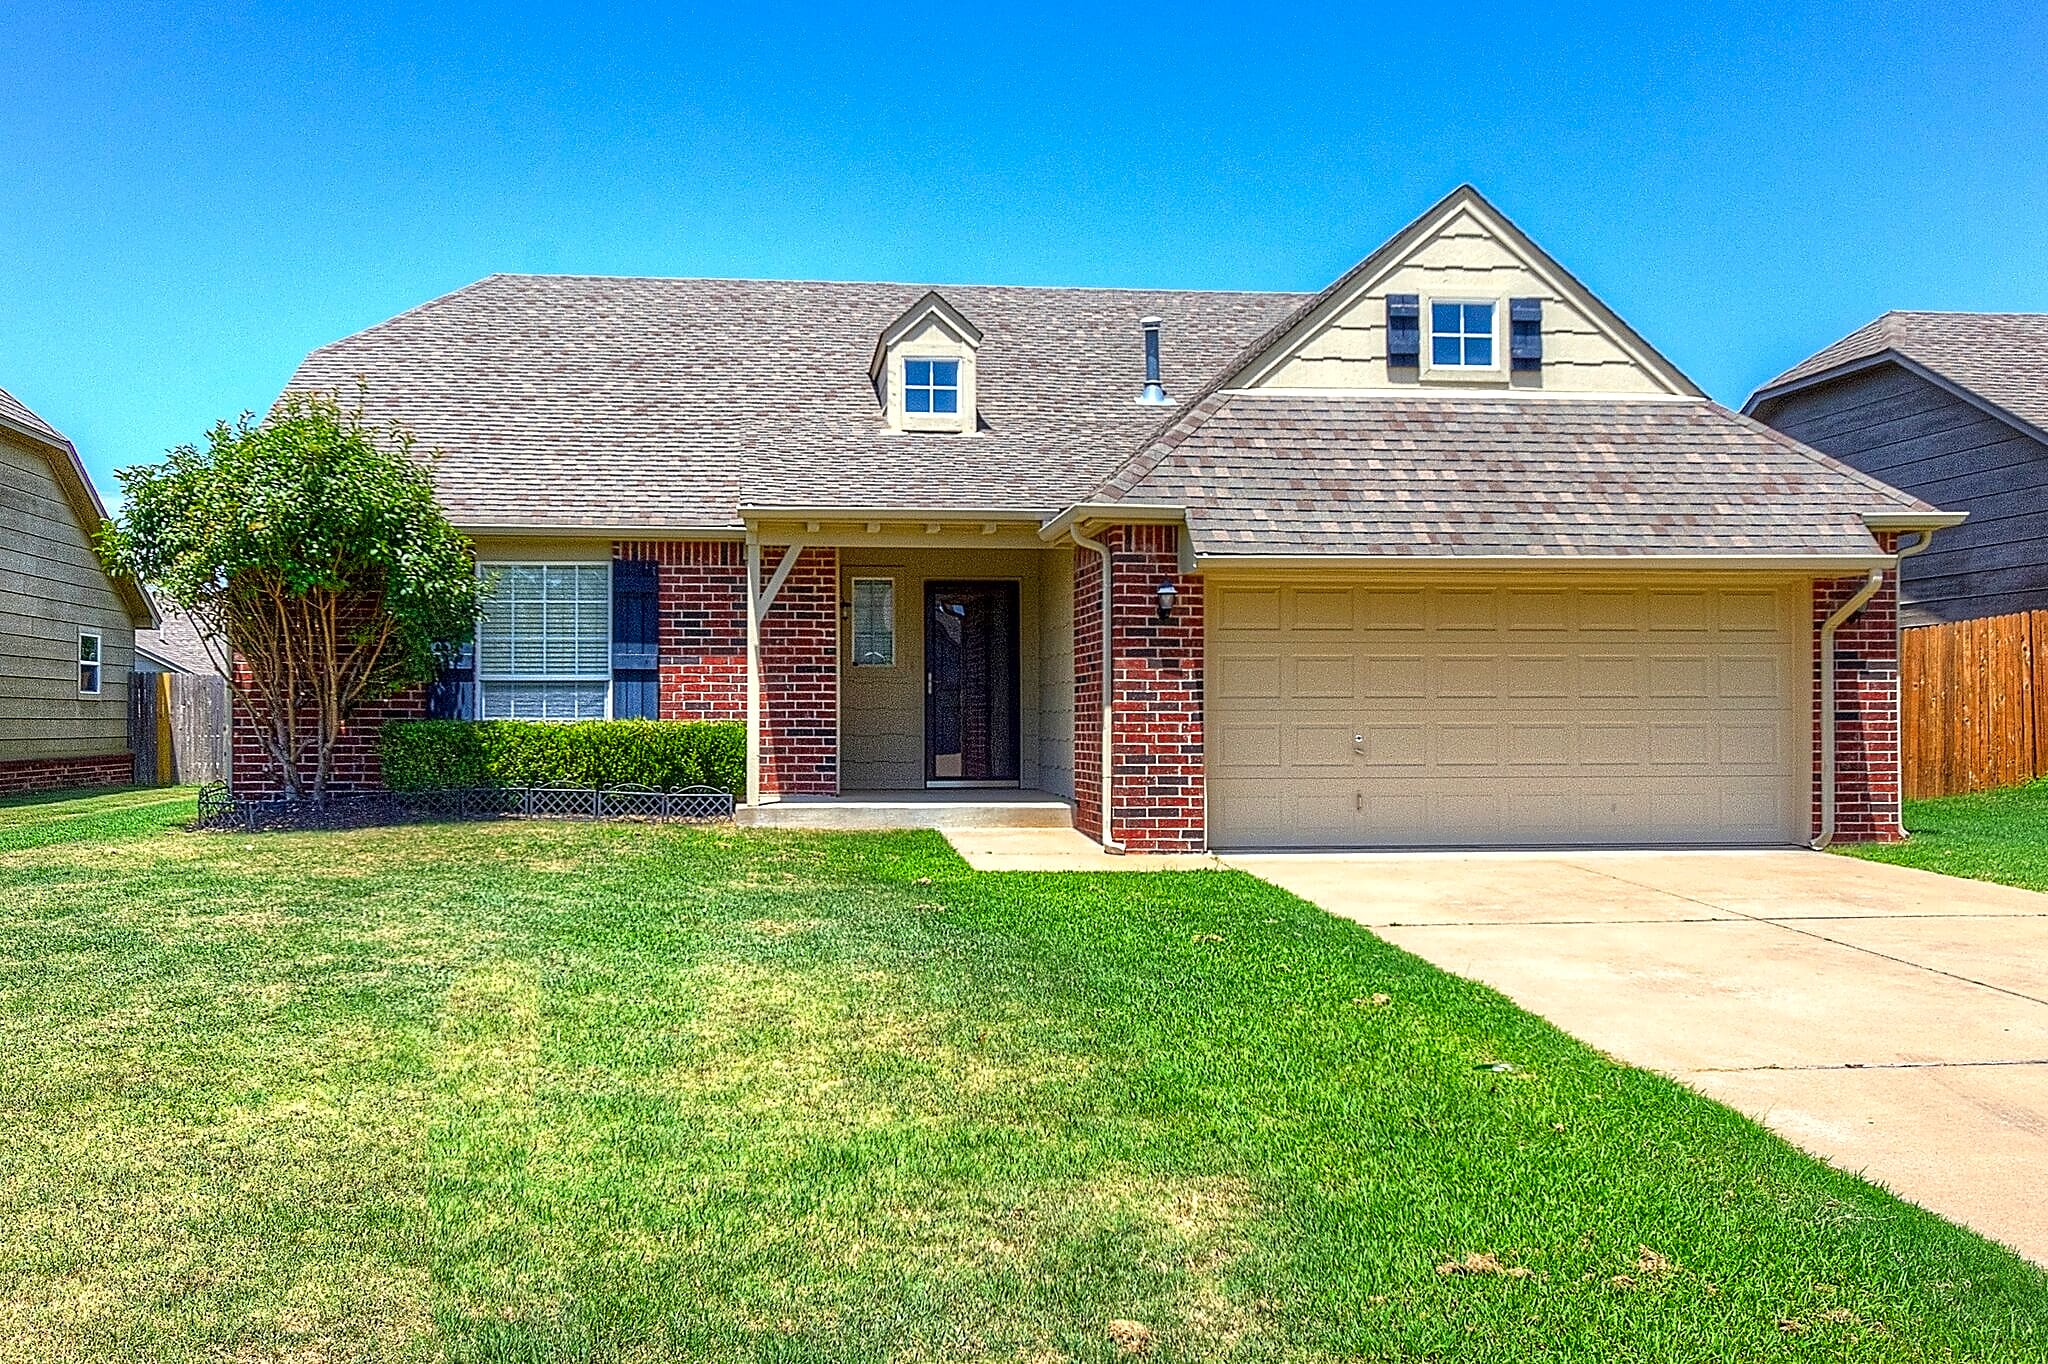 Broken Arrow Houses for Rent in Broken Arrow Oklahoma